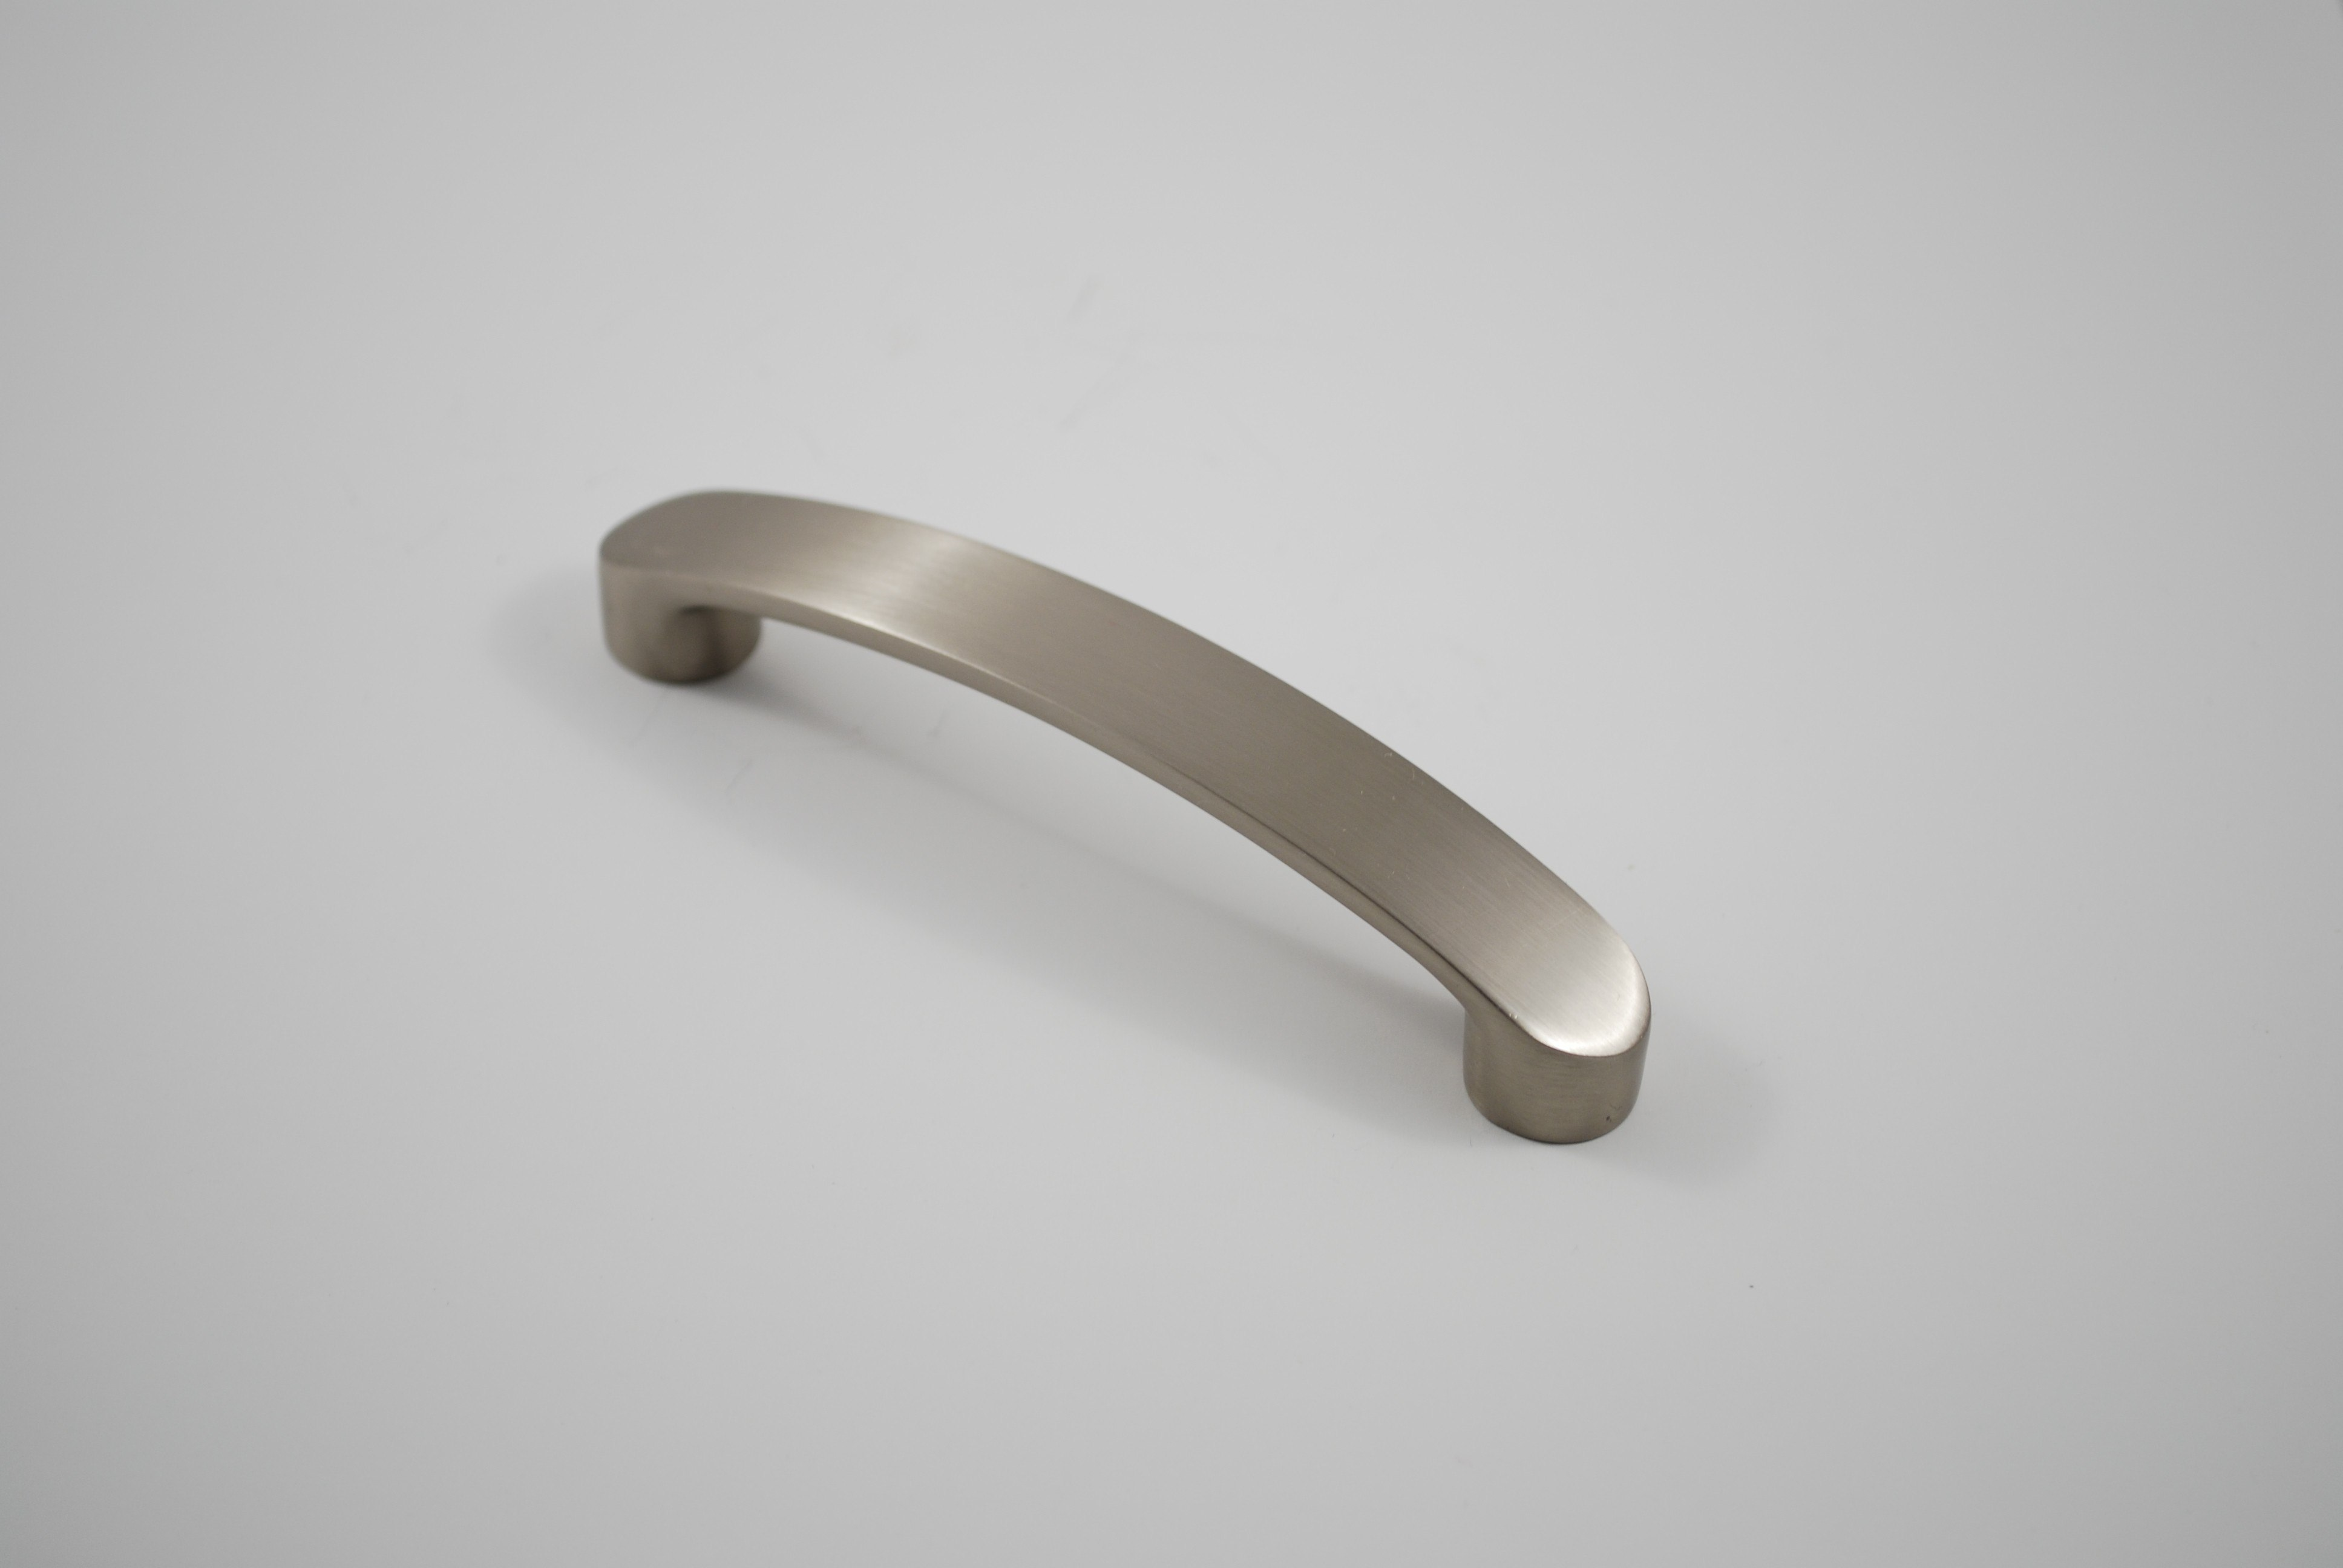 Residential Essentials 10340 Cabinet Pull